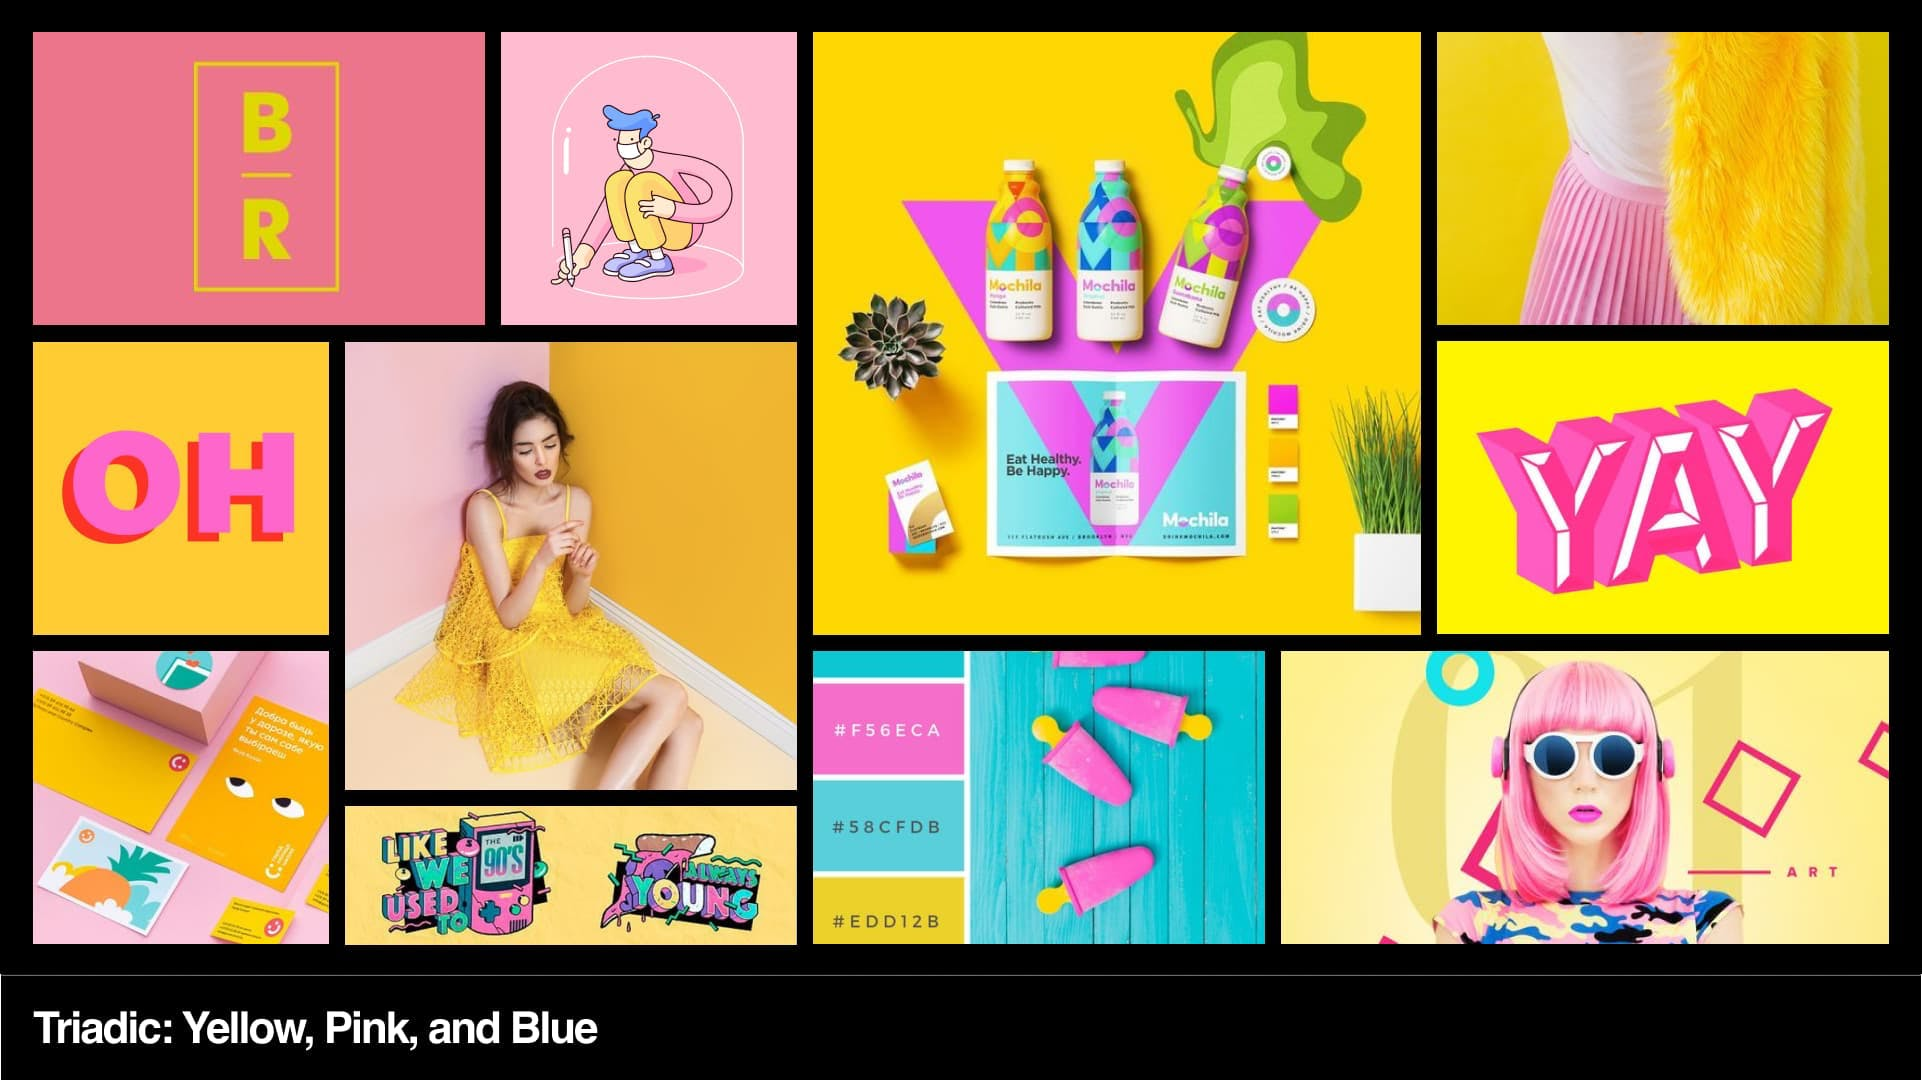 Triadic colour mood board, yellow, pink, and blue.